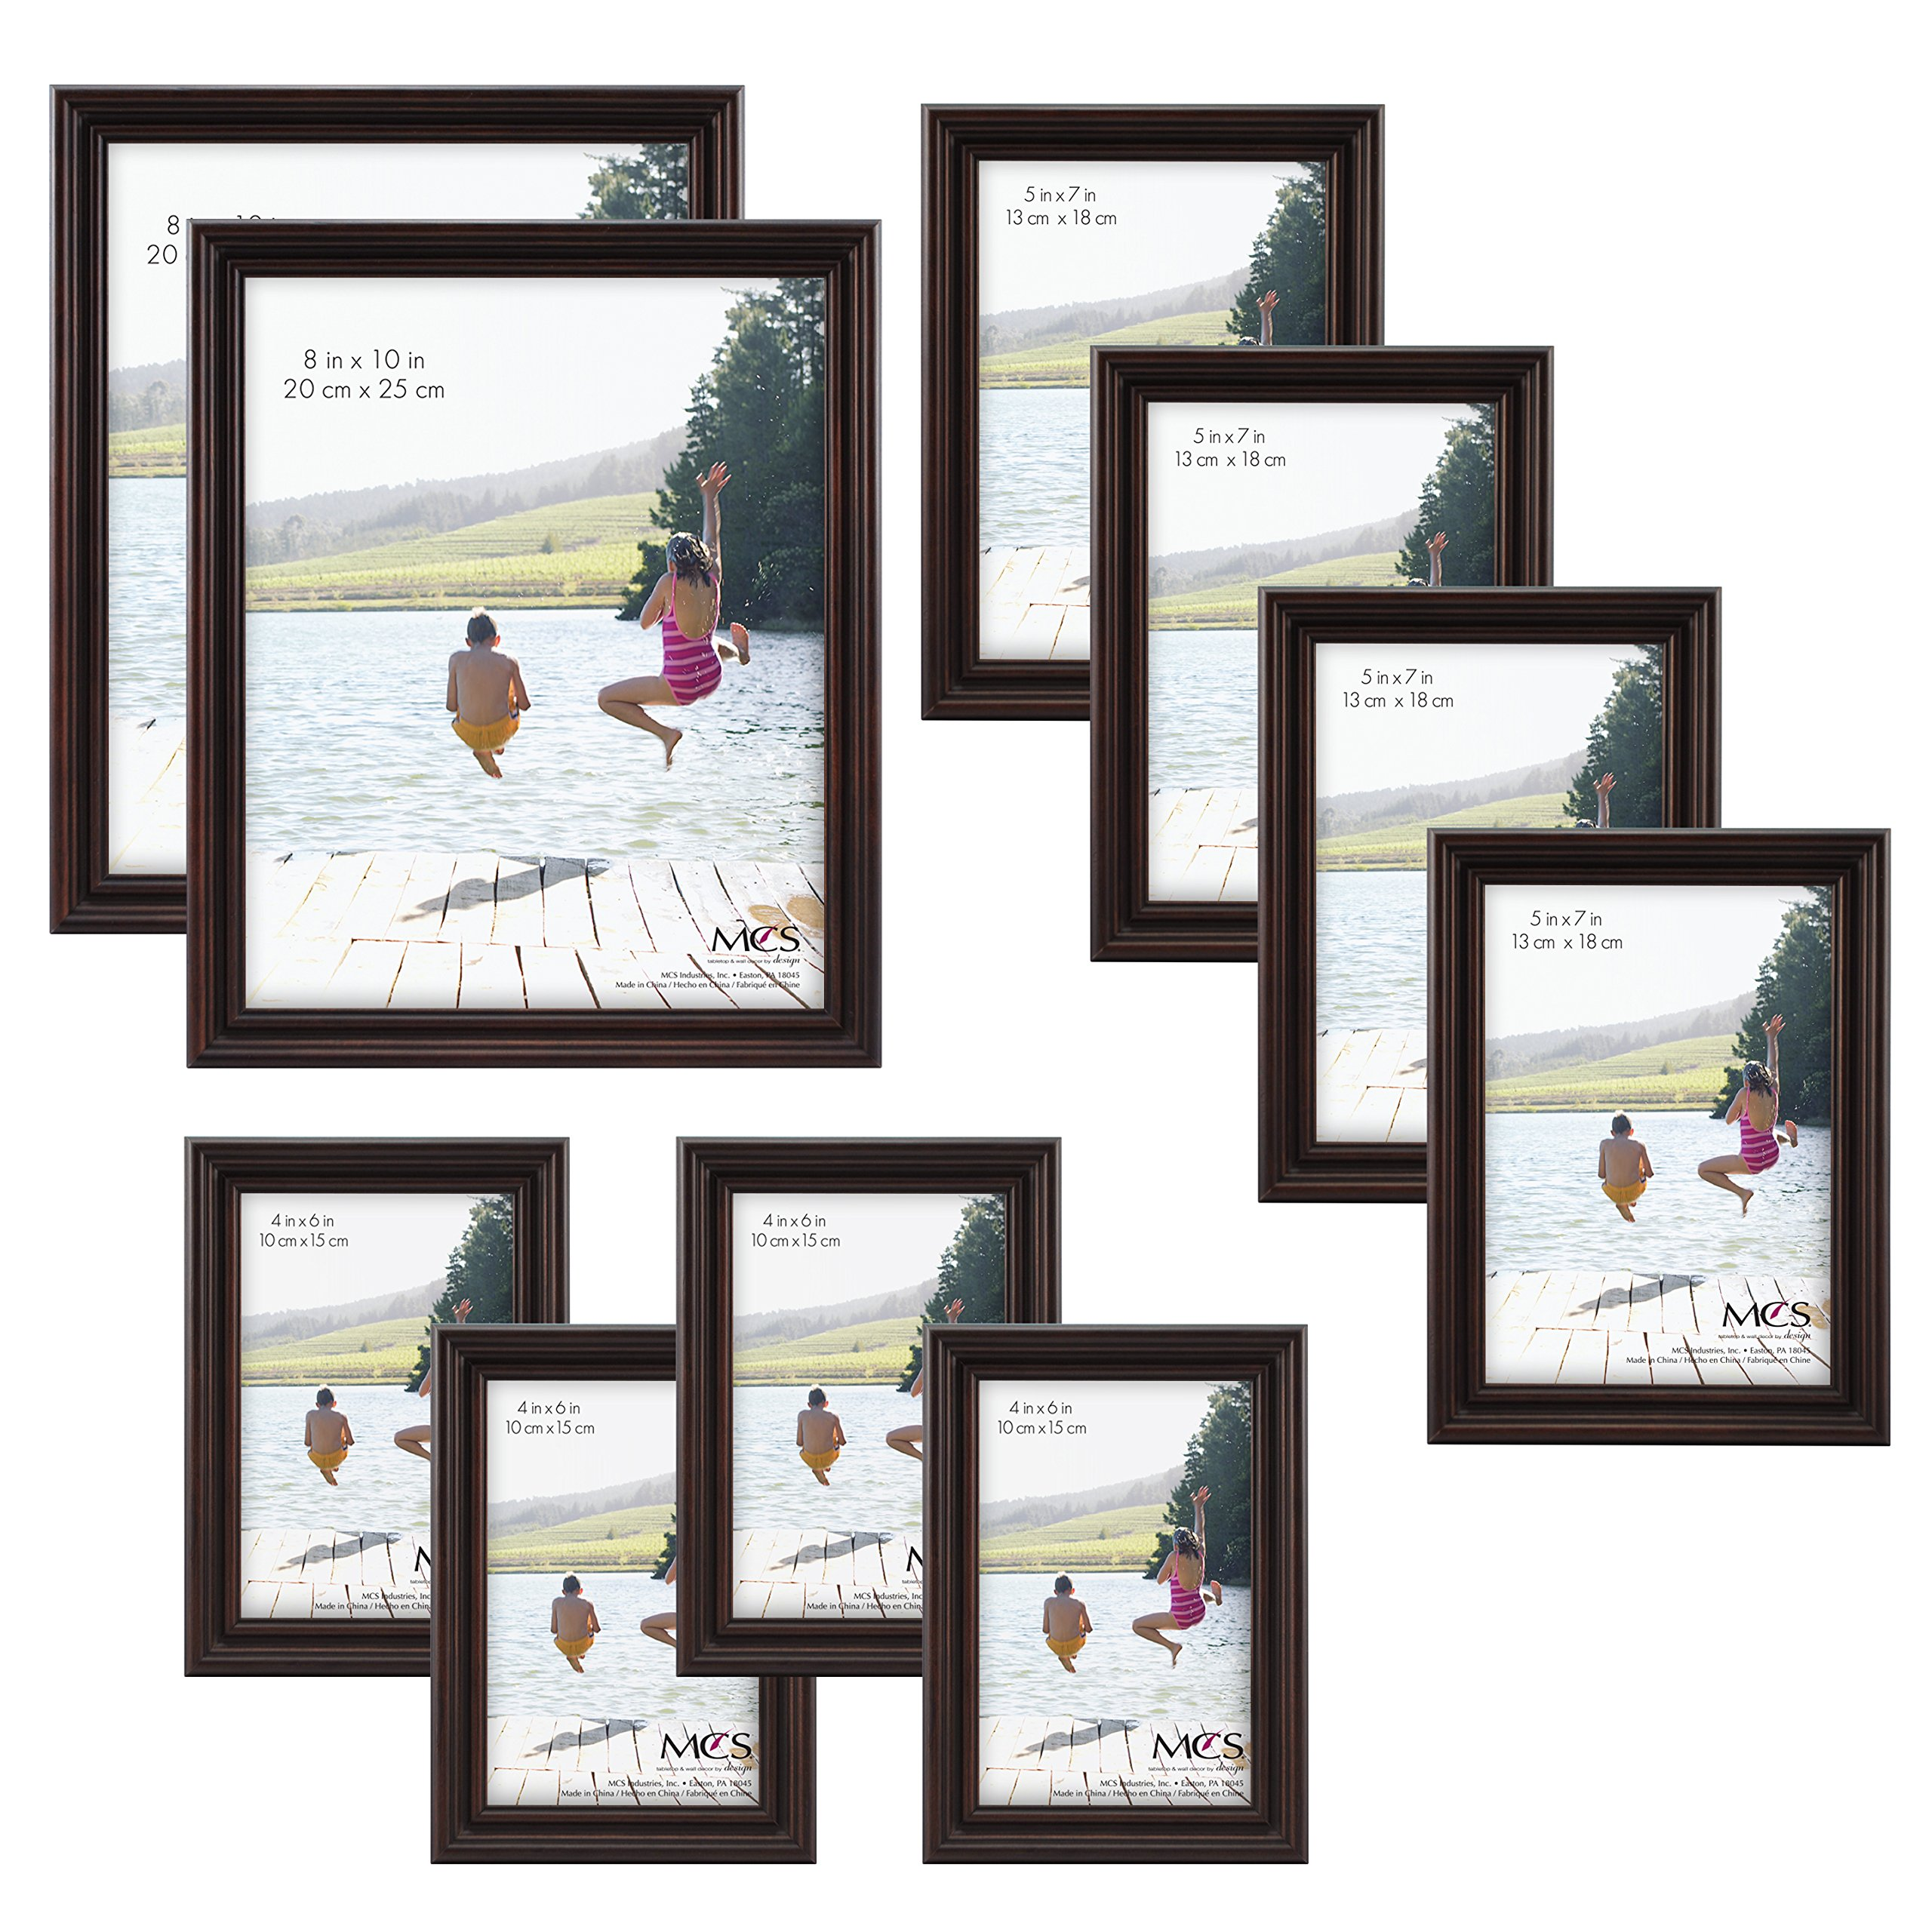 MCS 10pc Multi Pack Picture Frame Value Set - Two 8x10 Inch, Four 5x7 Inch, Four 4x6 In, Mahogany (65705) by MCS